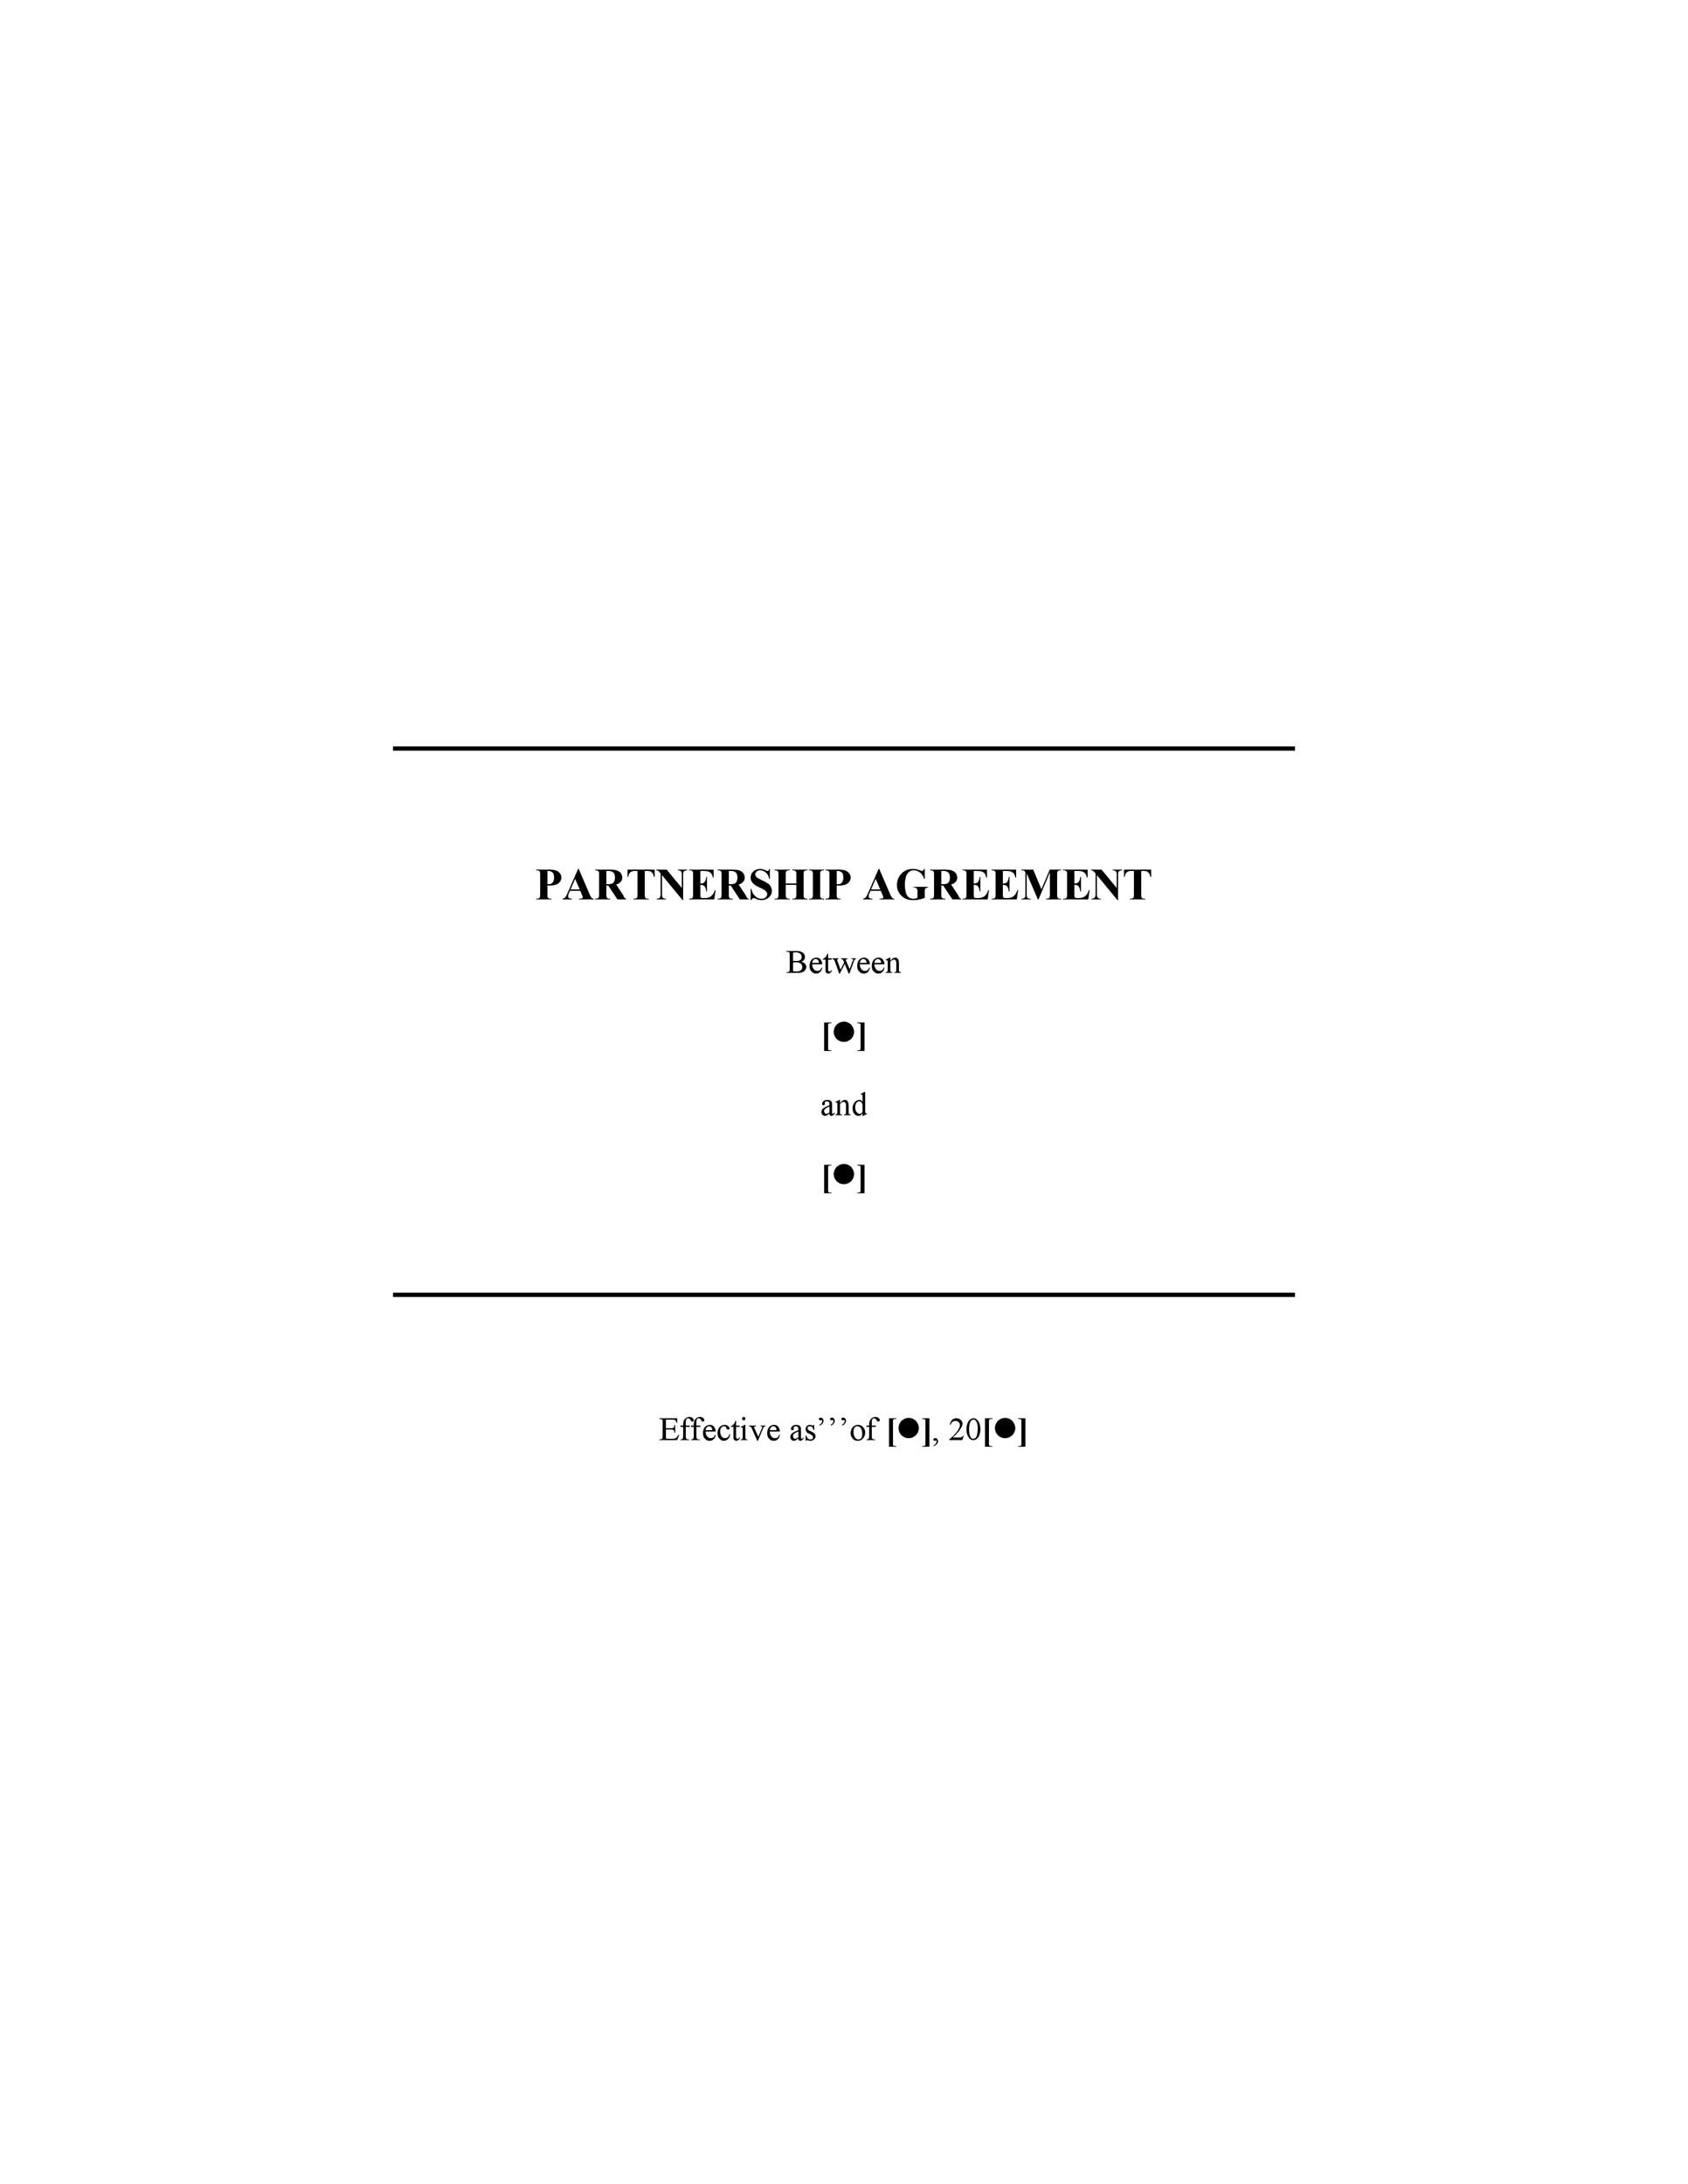 40+ FREE Partnership Agreement Templates (Business, General) - Business Partnership Agreement Template